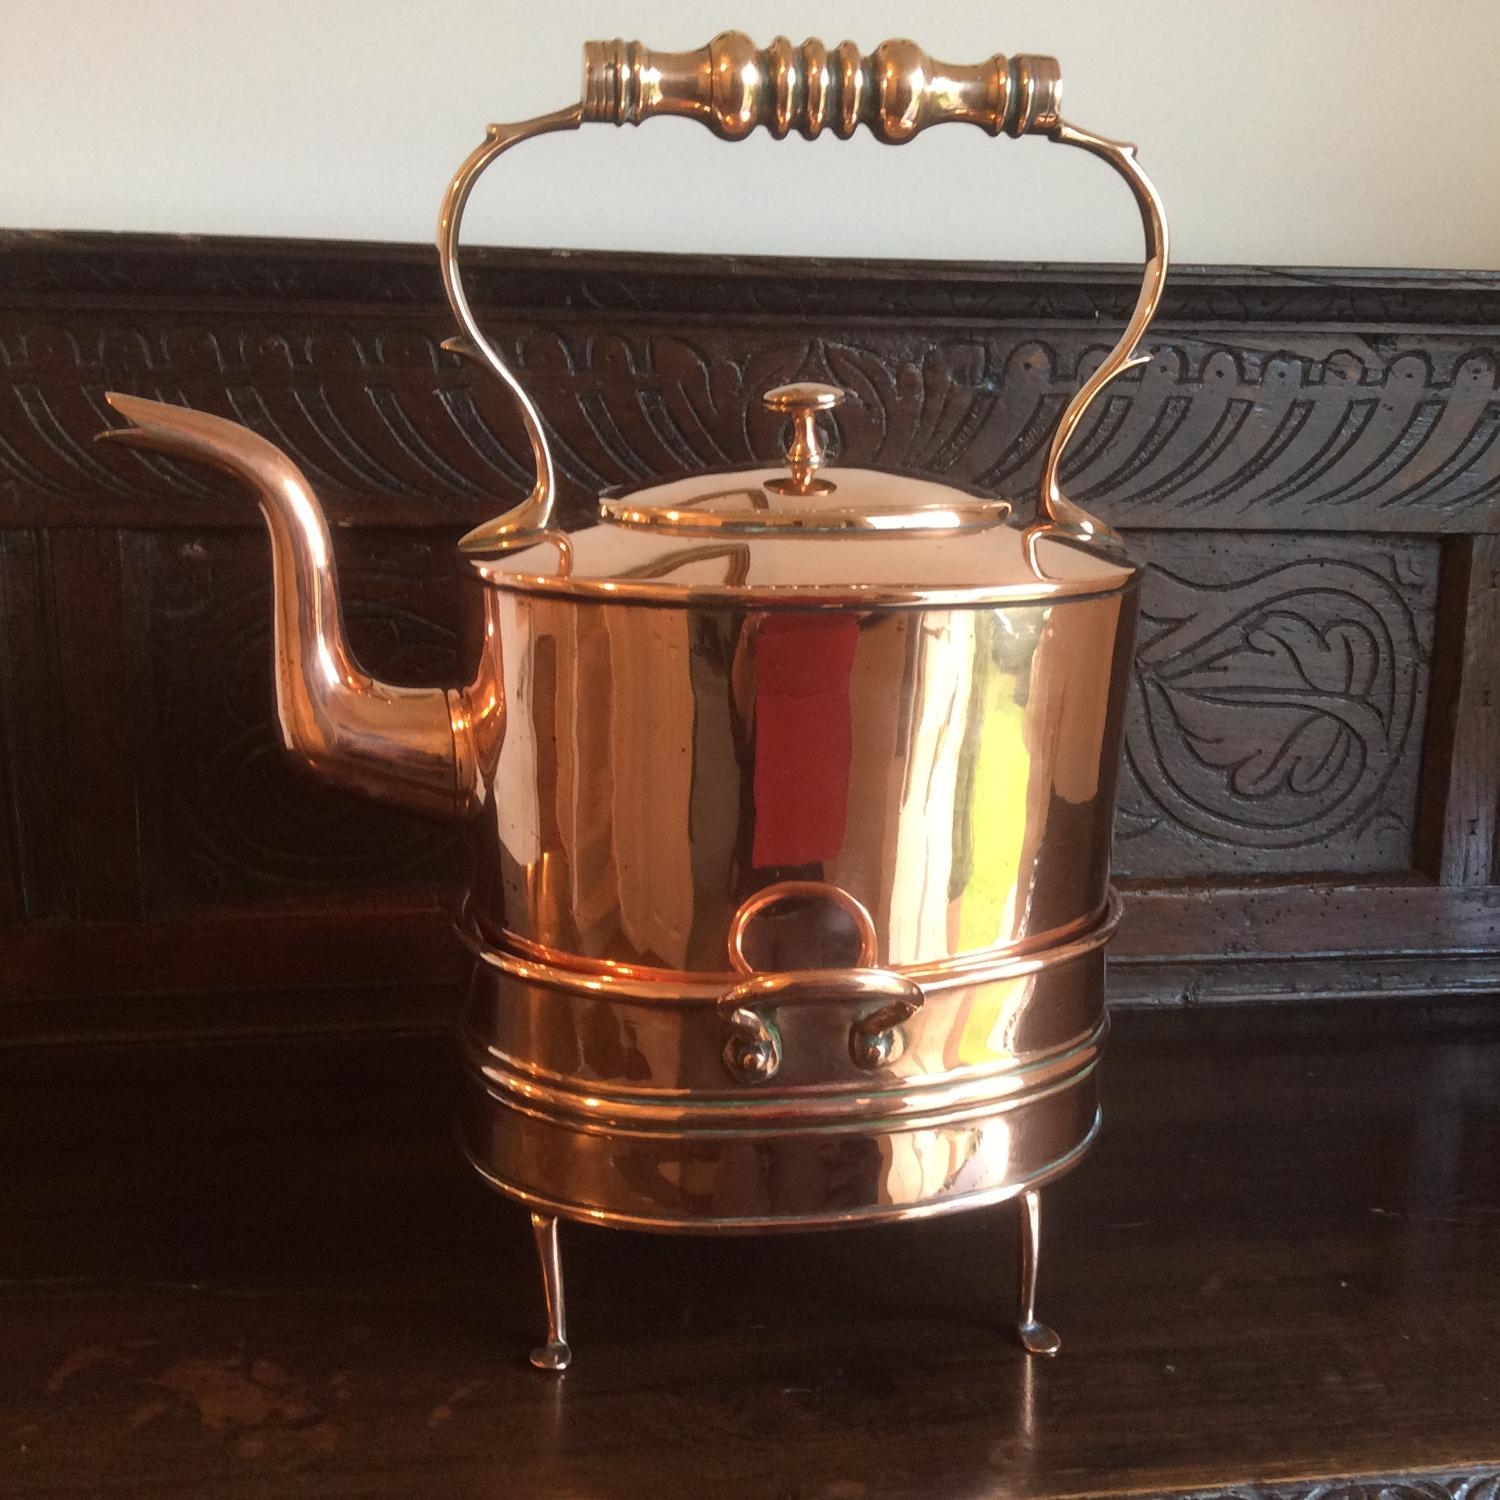 19th century copper  kettle with warming  stand